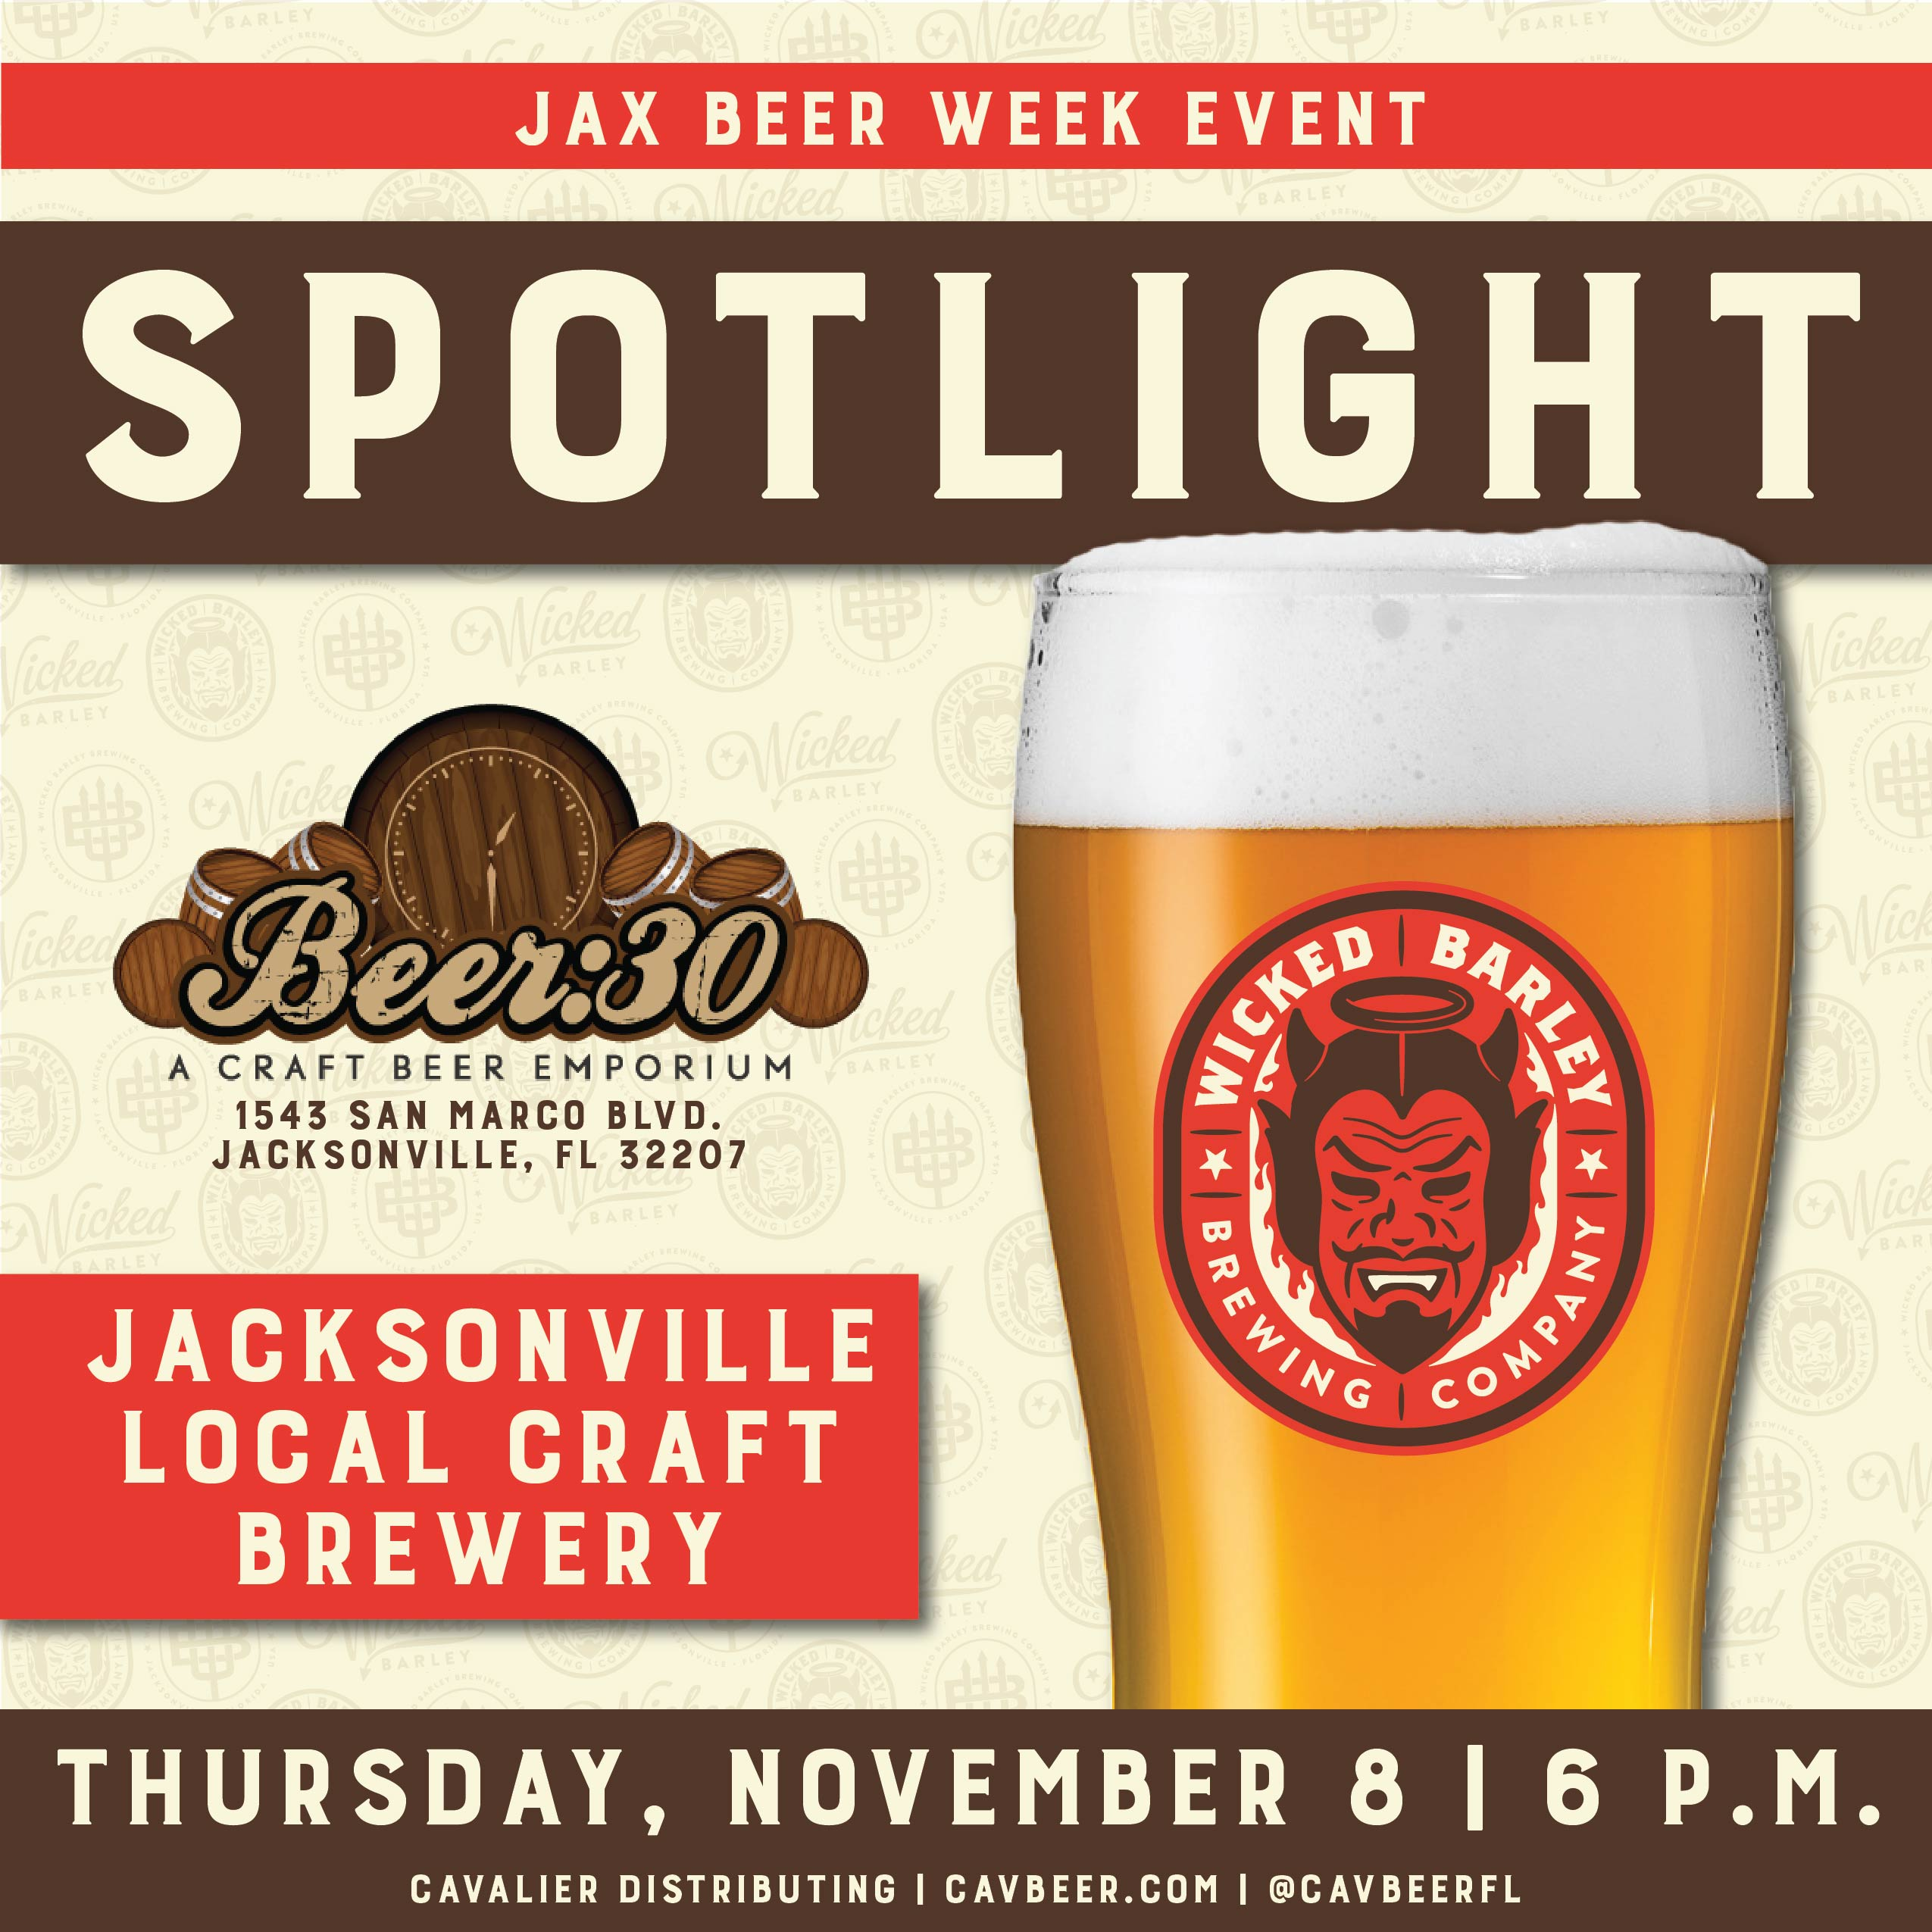 Jacksonville Beer Week: Beer:30 Brewery Spotlight – Wicked Barley Brewing Company